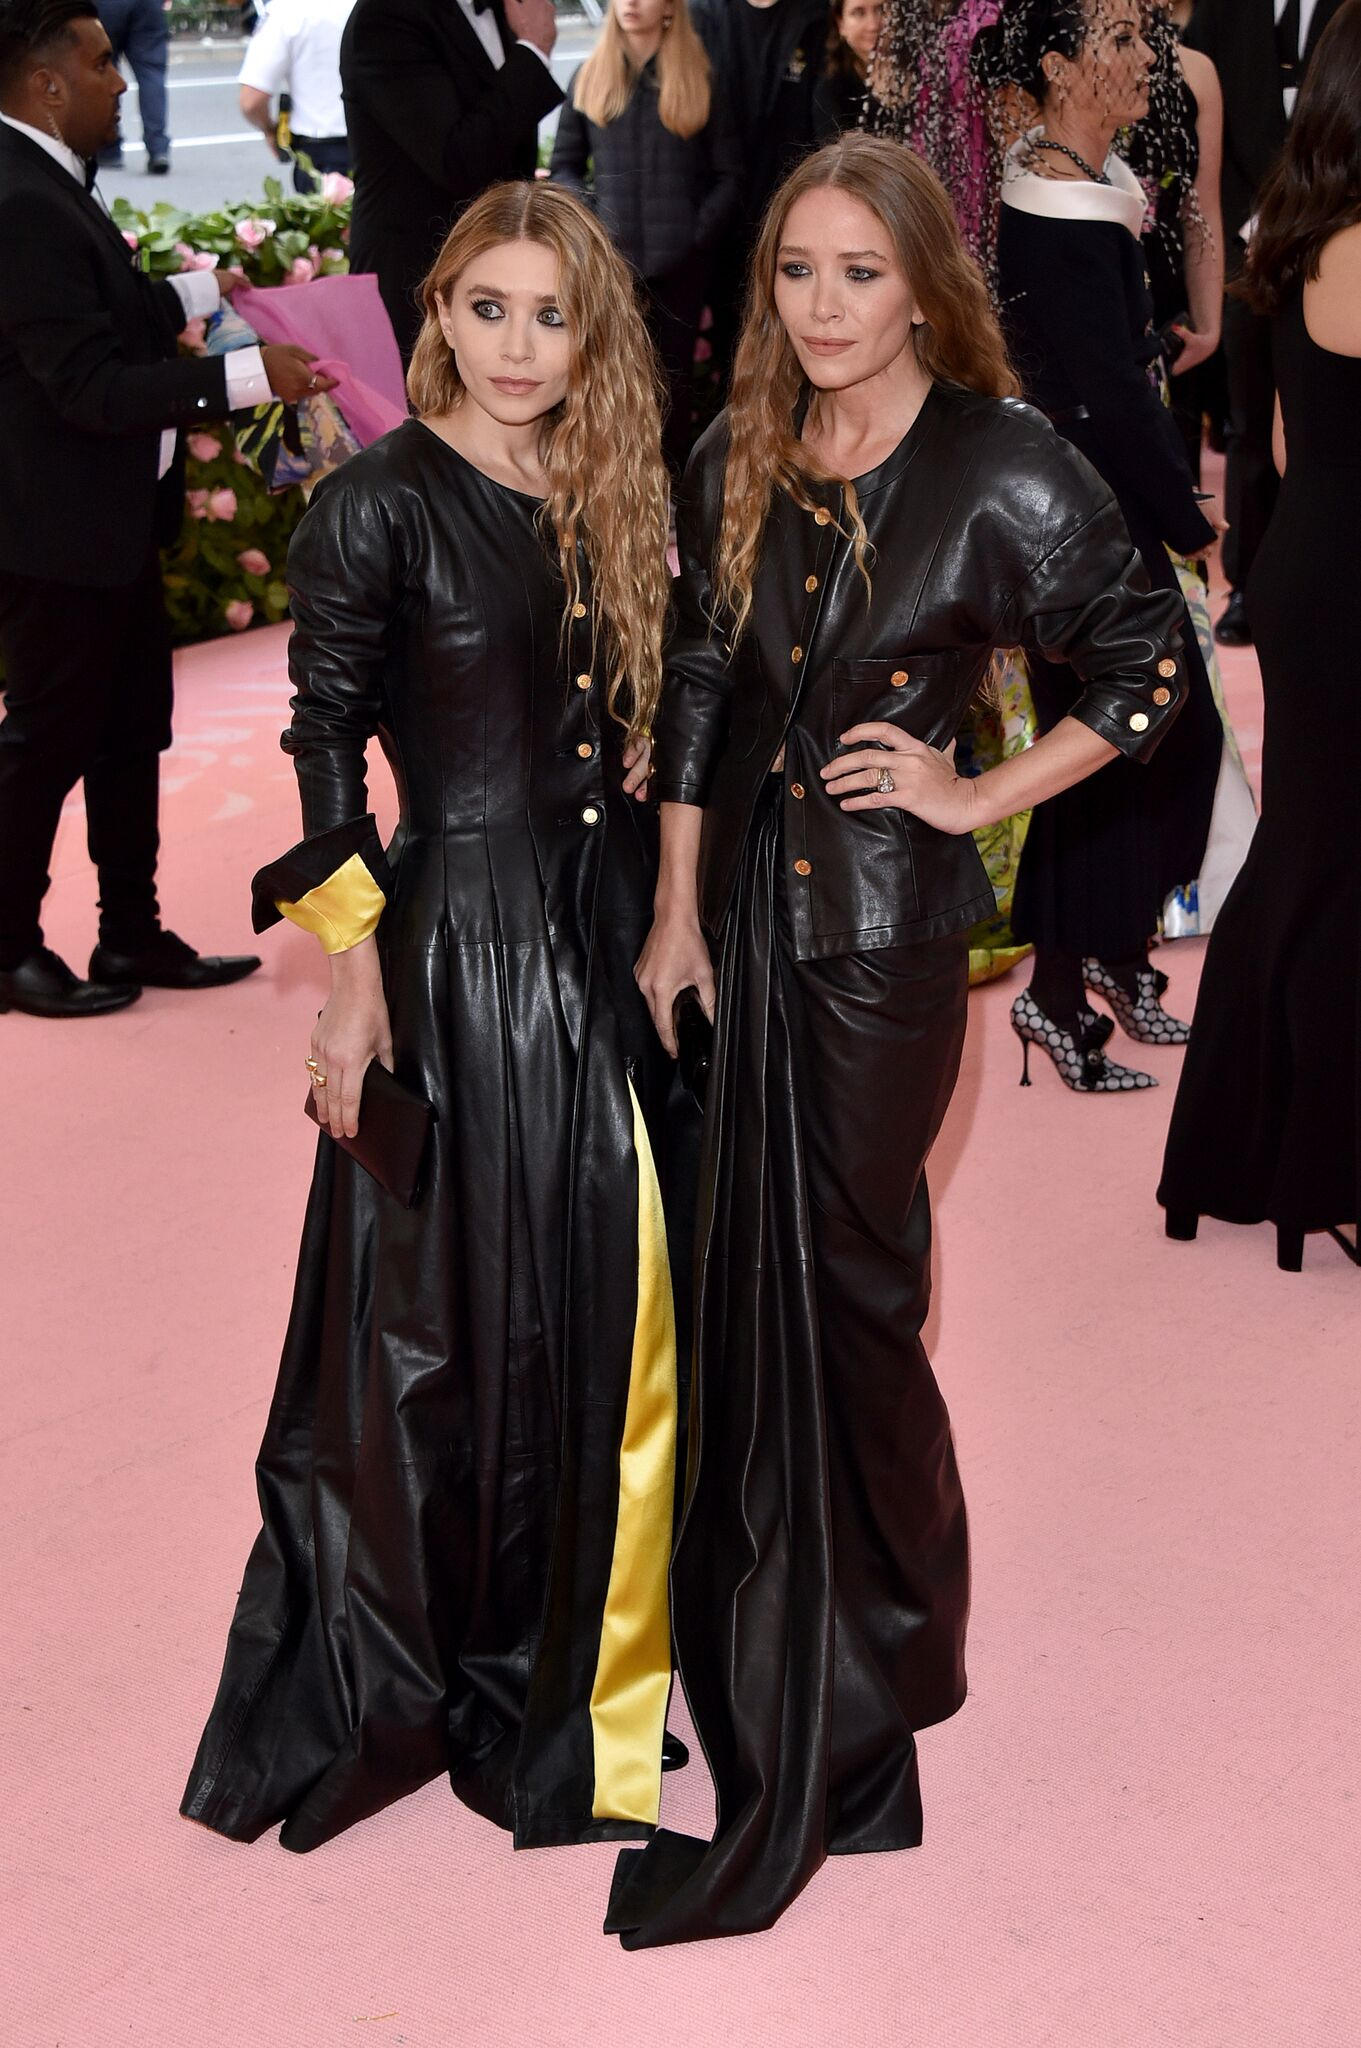 Mary-Kate Olsen and Ashley Olsen attend The 2019 Met Gala Celebrating Camp: Notes On Fashion at The Metropolitan Museum of Art | Getty Images / Global Images Ukraine